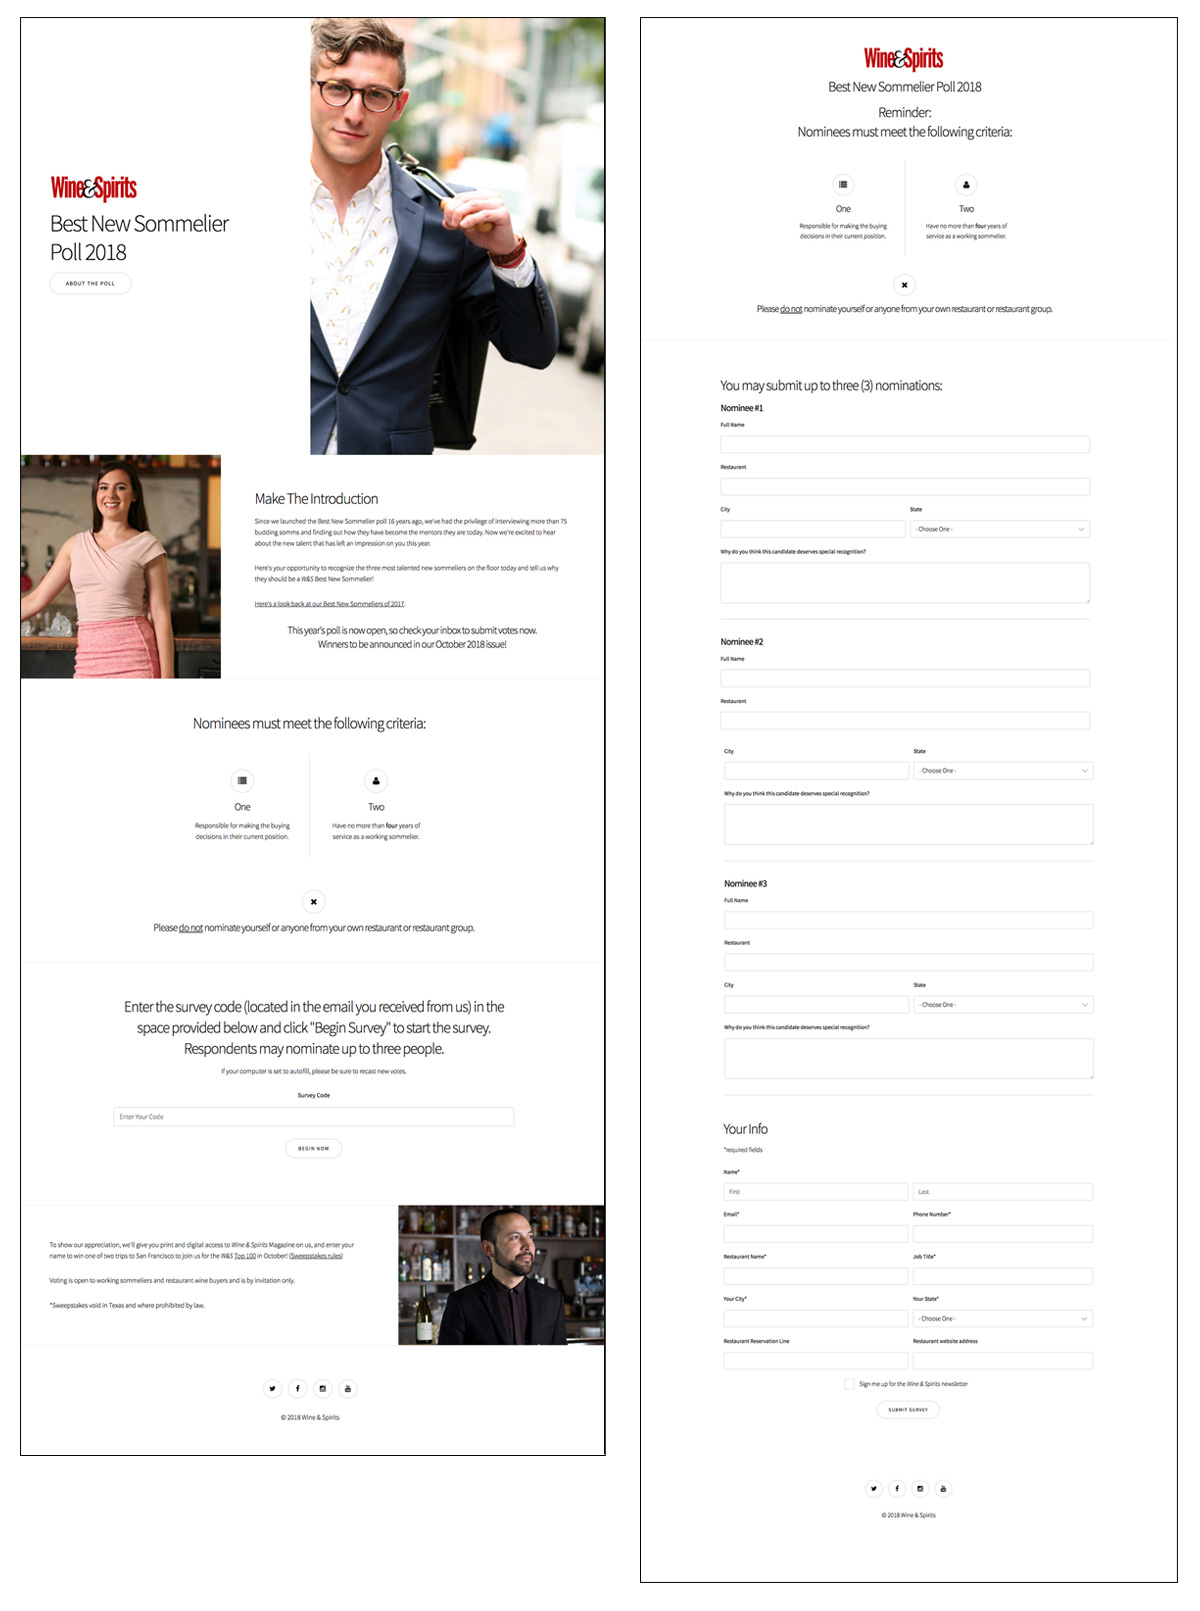 Best New Sommelier Poll Landing Page -